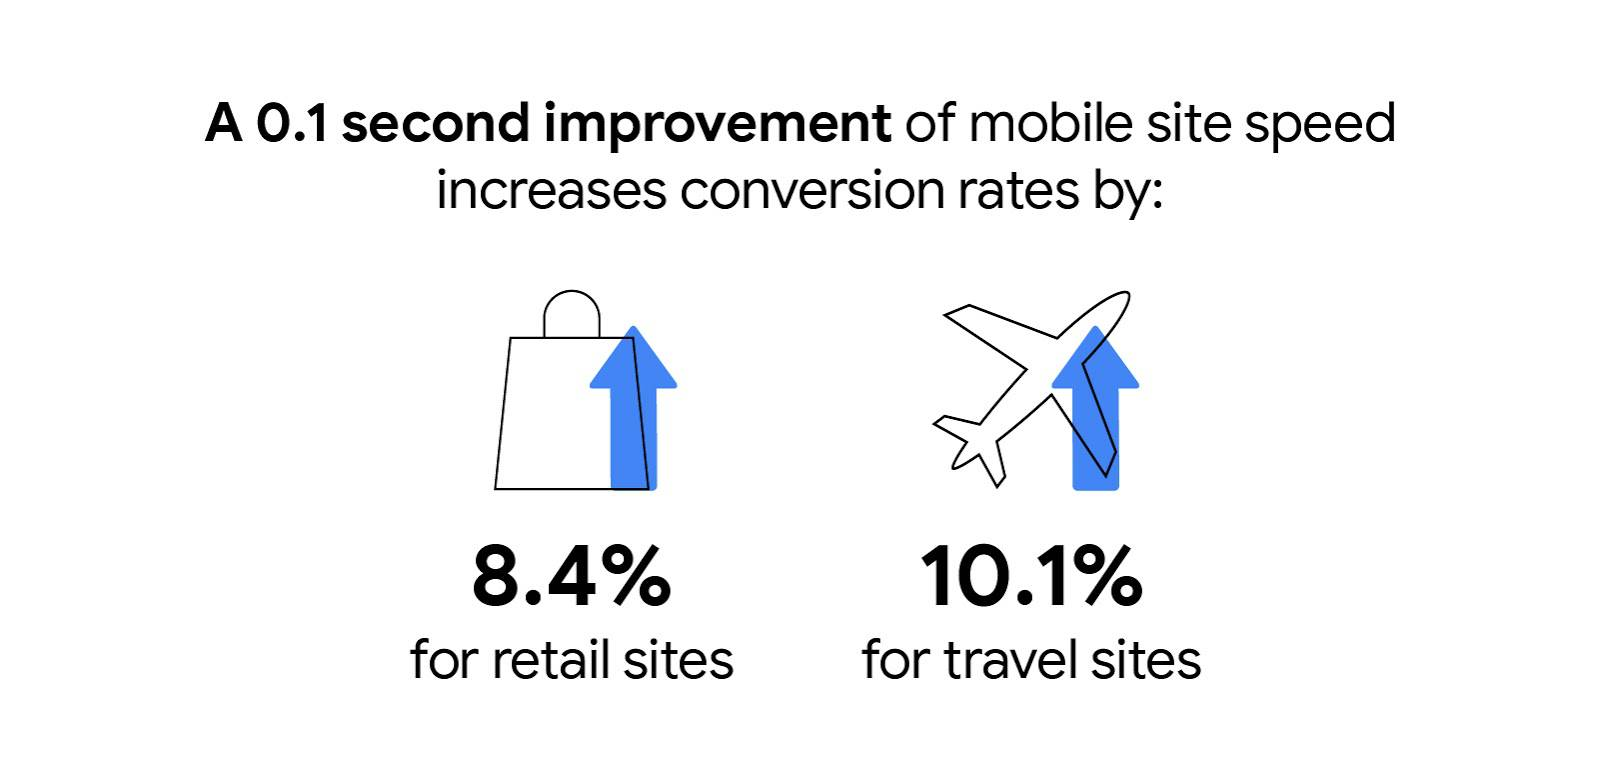 A 0.1 second improvement of mobile site speed increases conversion rates by 8.4% for retail sites and 10.1% for travel sites.